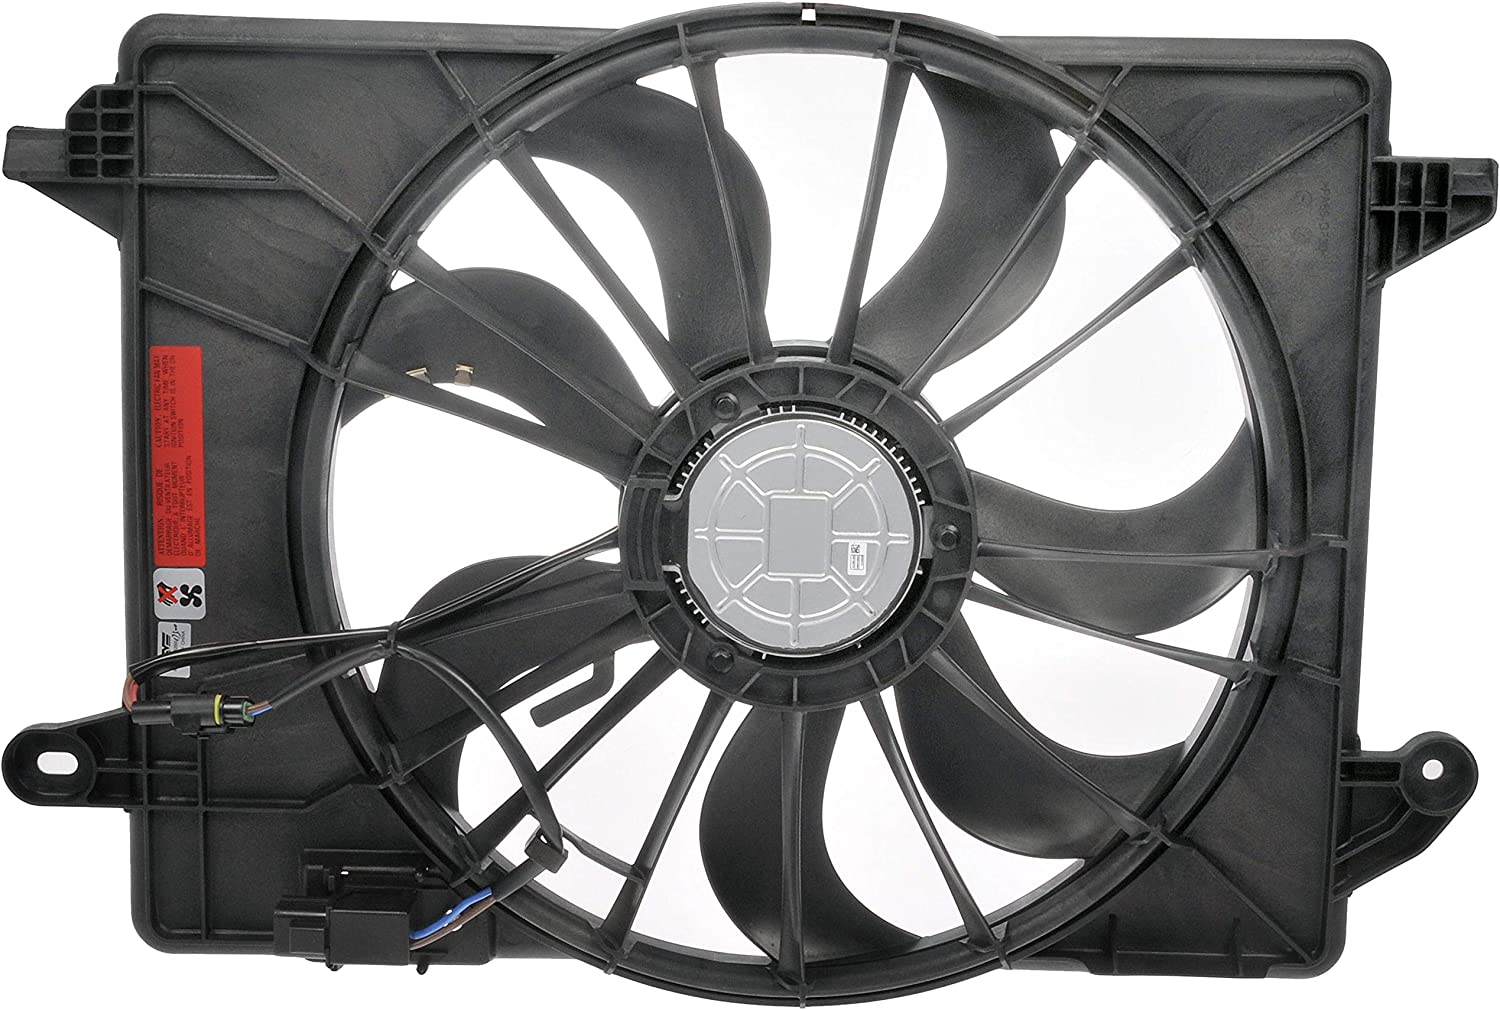 Dorman 621-526XD Engine Cooling Fan Assembly for Select Chrysler / Dodge Models, Black (OE FIX)